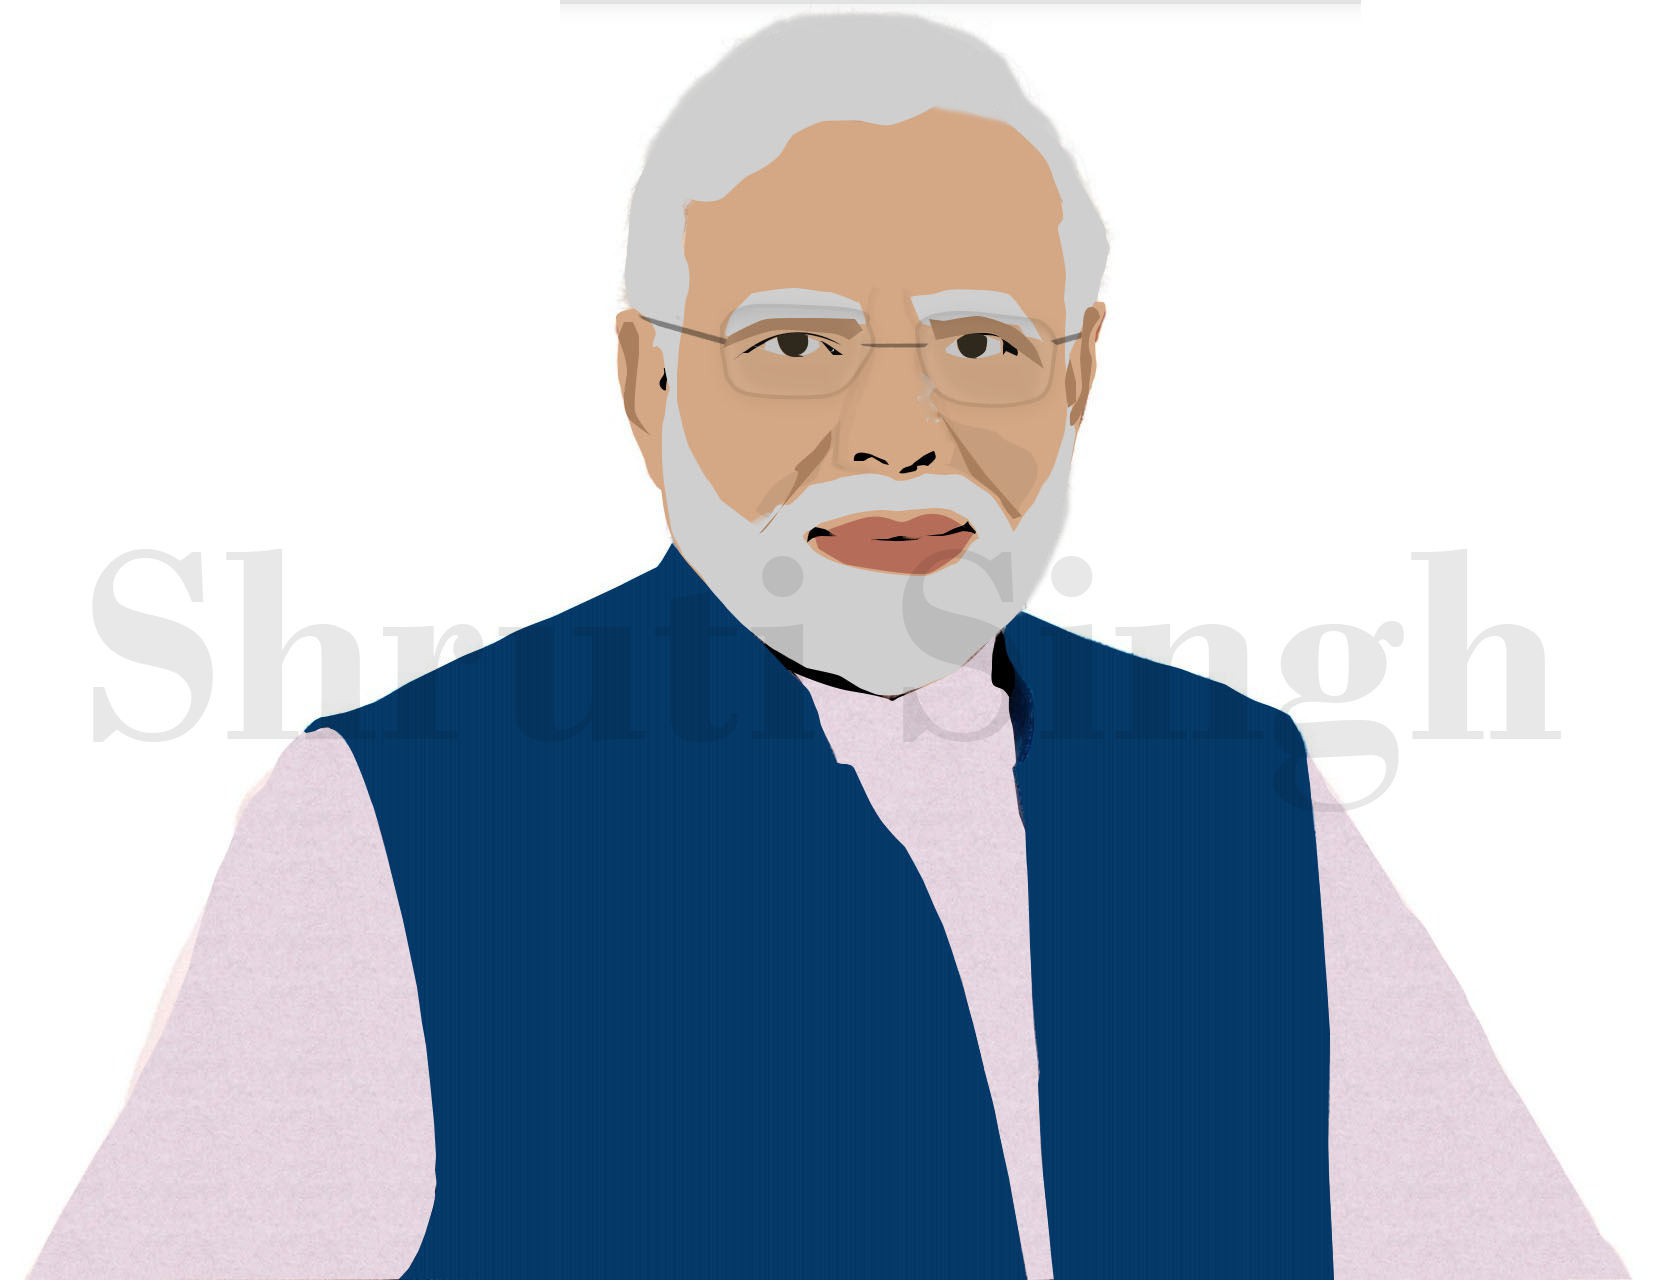 Shri Narendra Modi Digital Portrait-digital sketches Showflipper